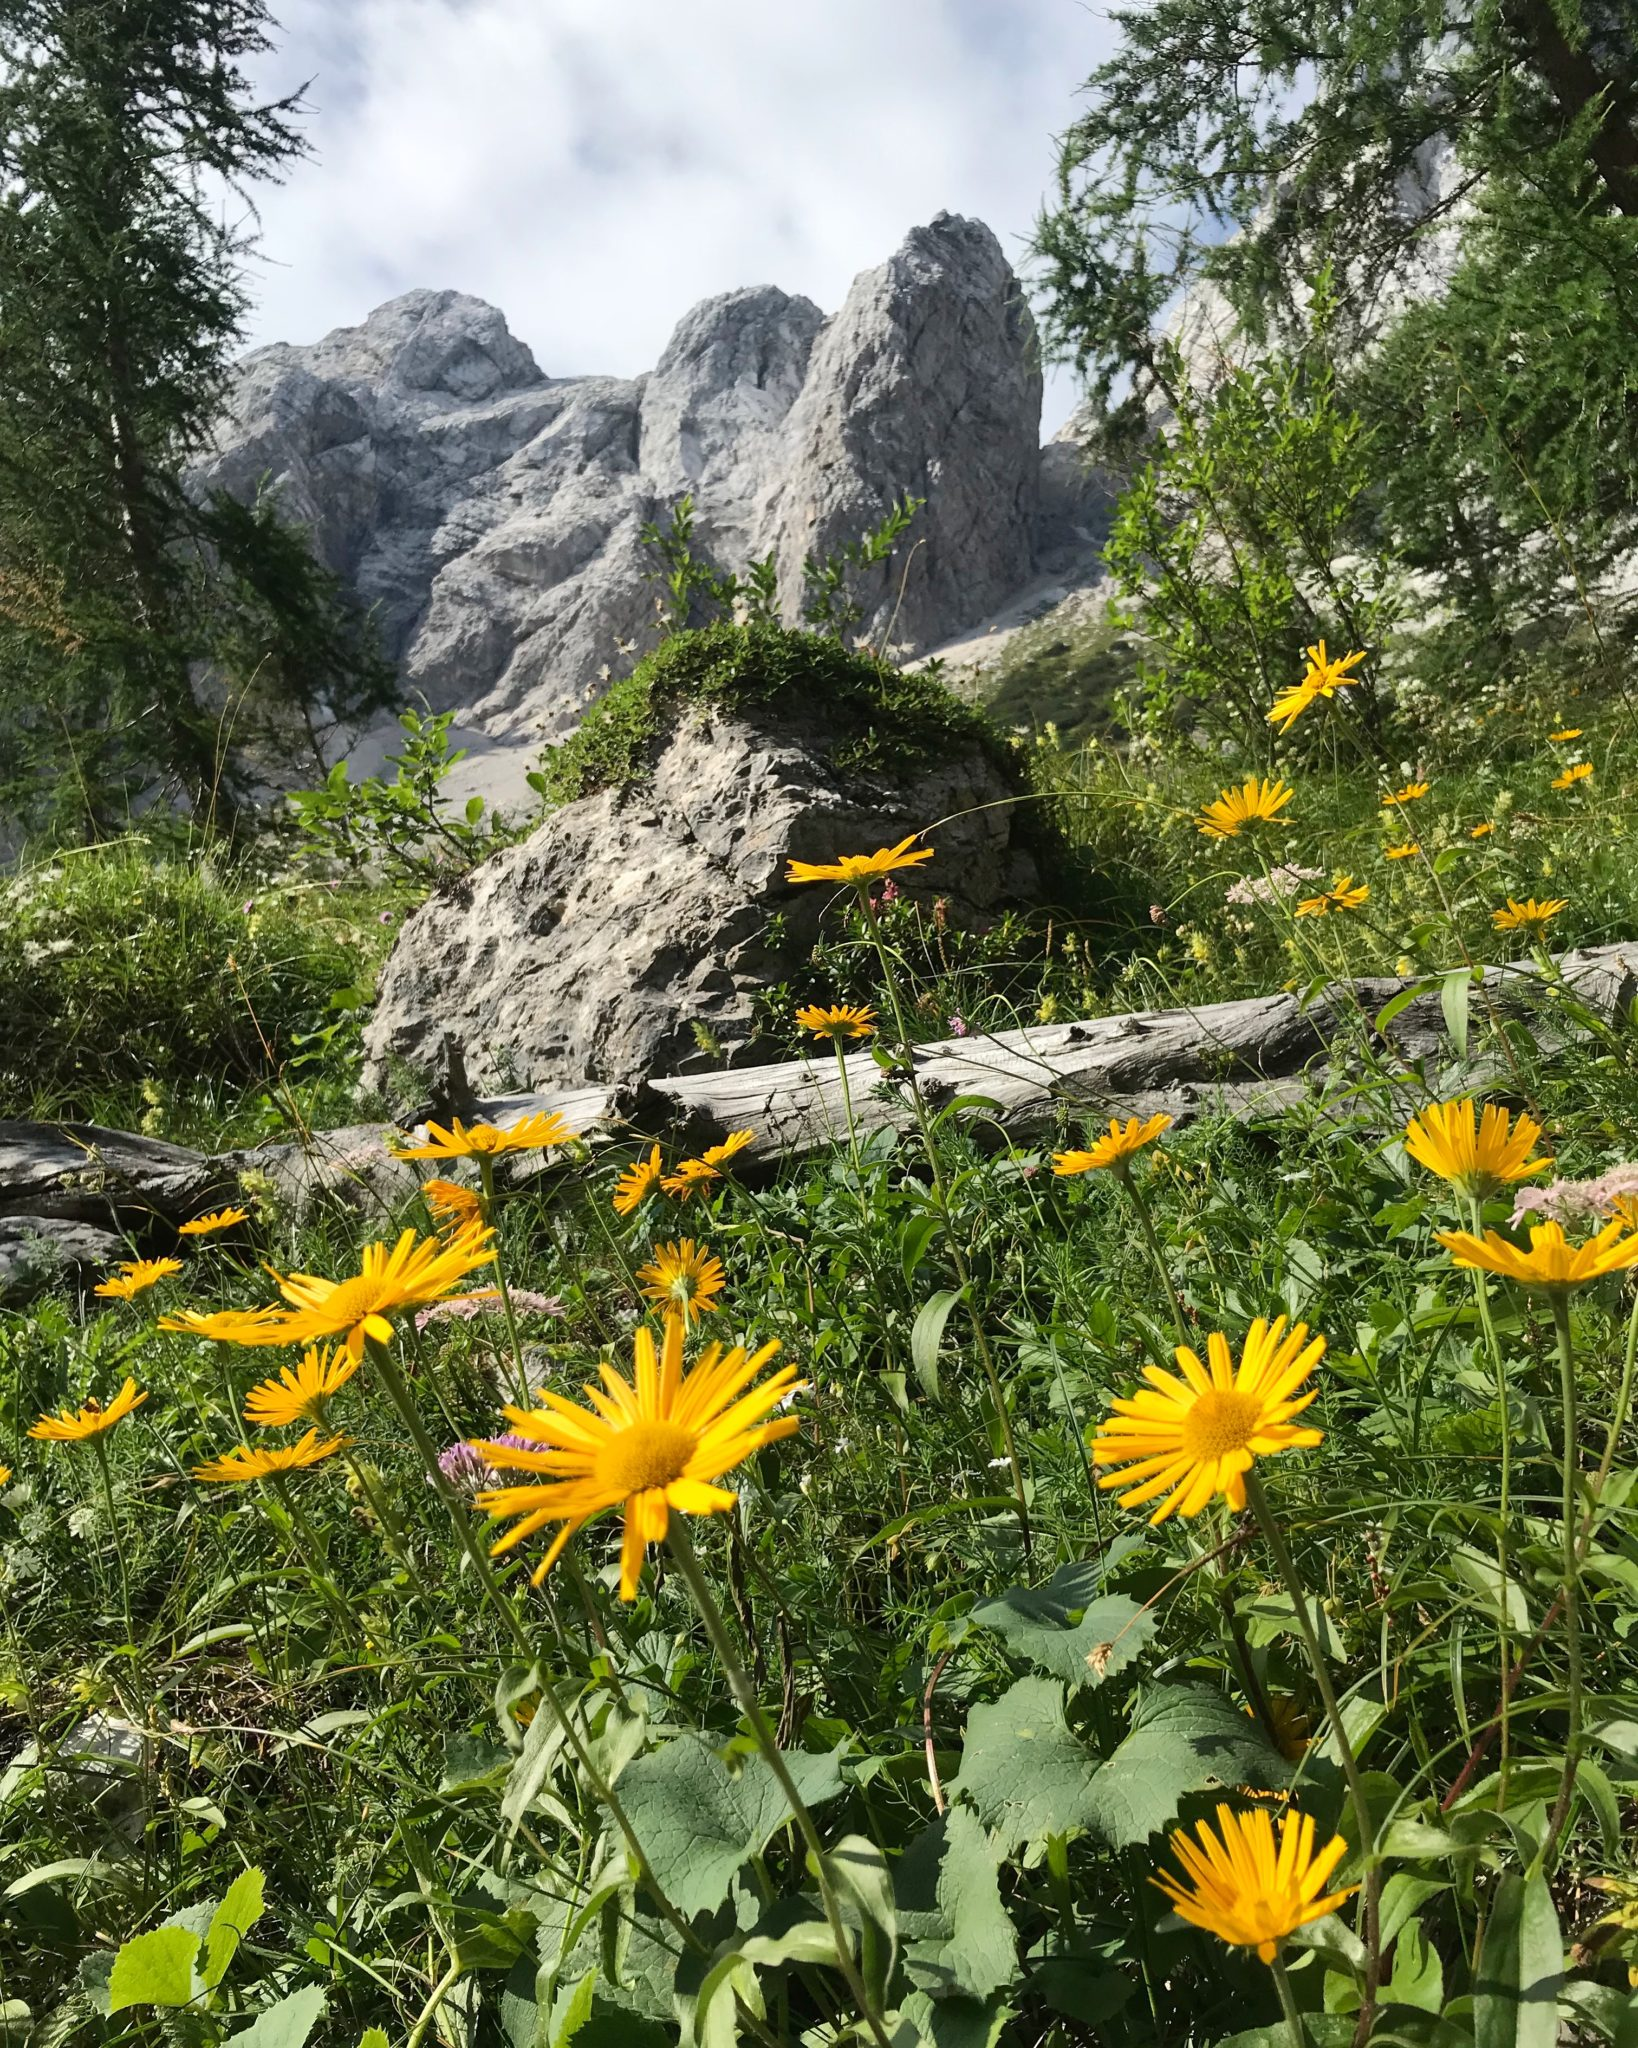 The Kamnik-Savinja Alps and flowers along the trail